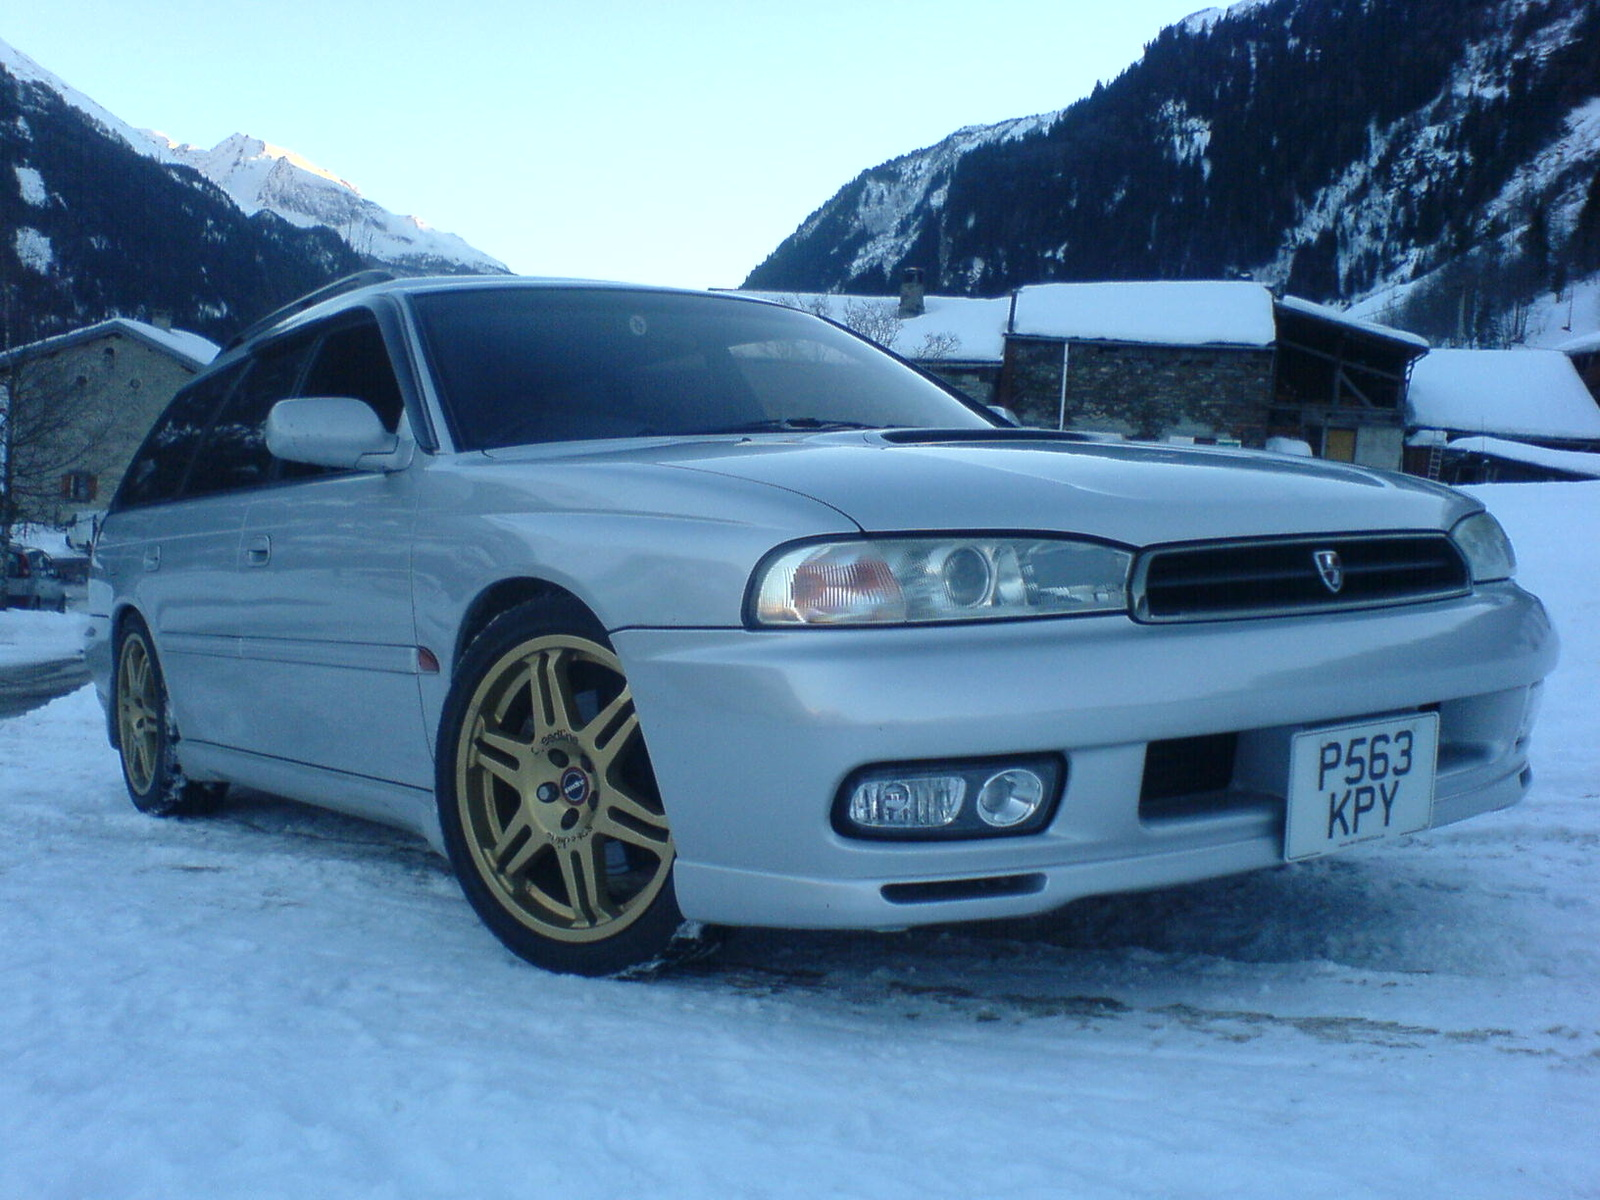 2000 Subaru Legacy Gt For Sale Cargurus Upcomingcarshq Com